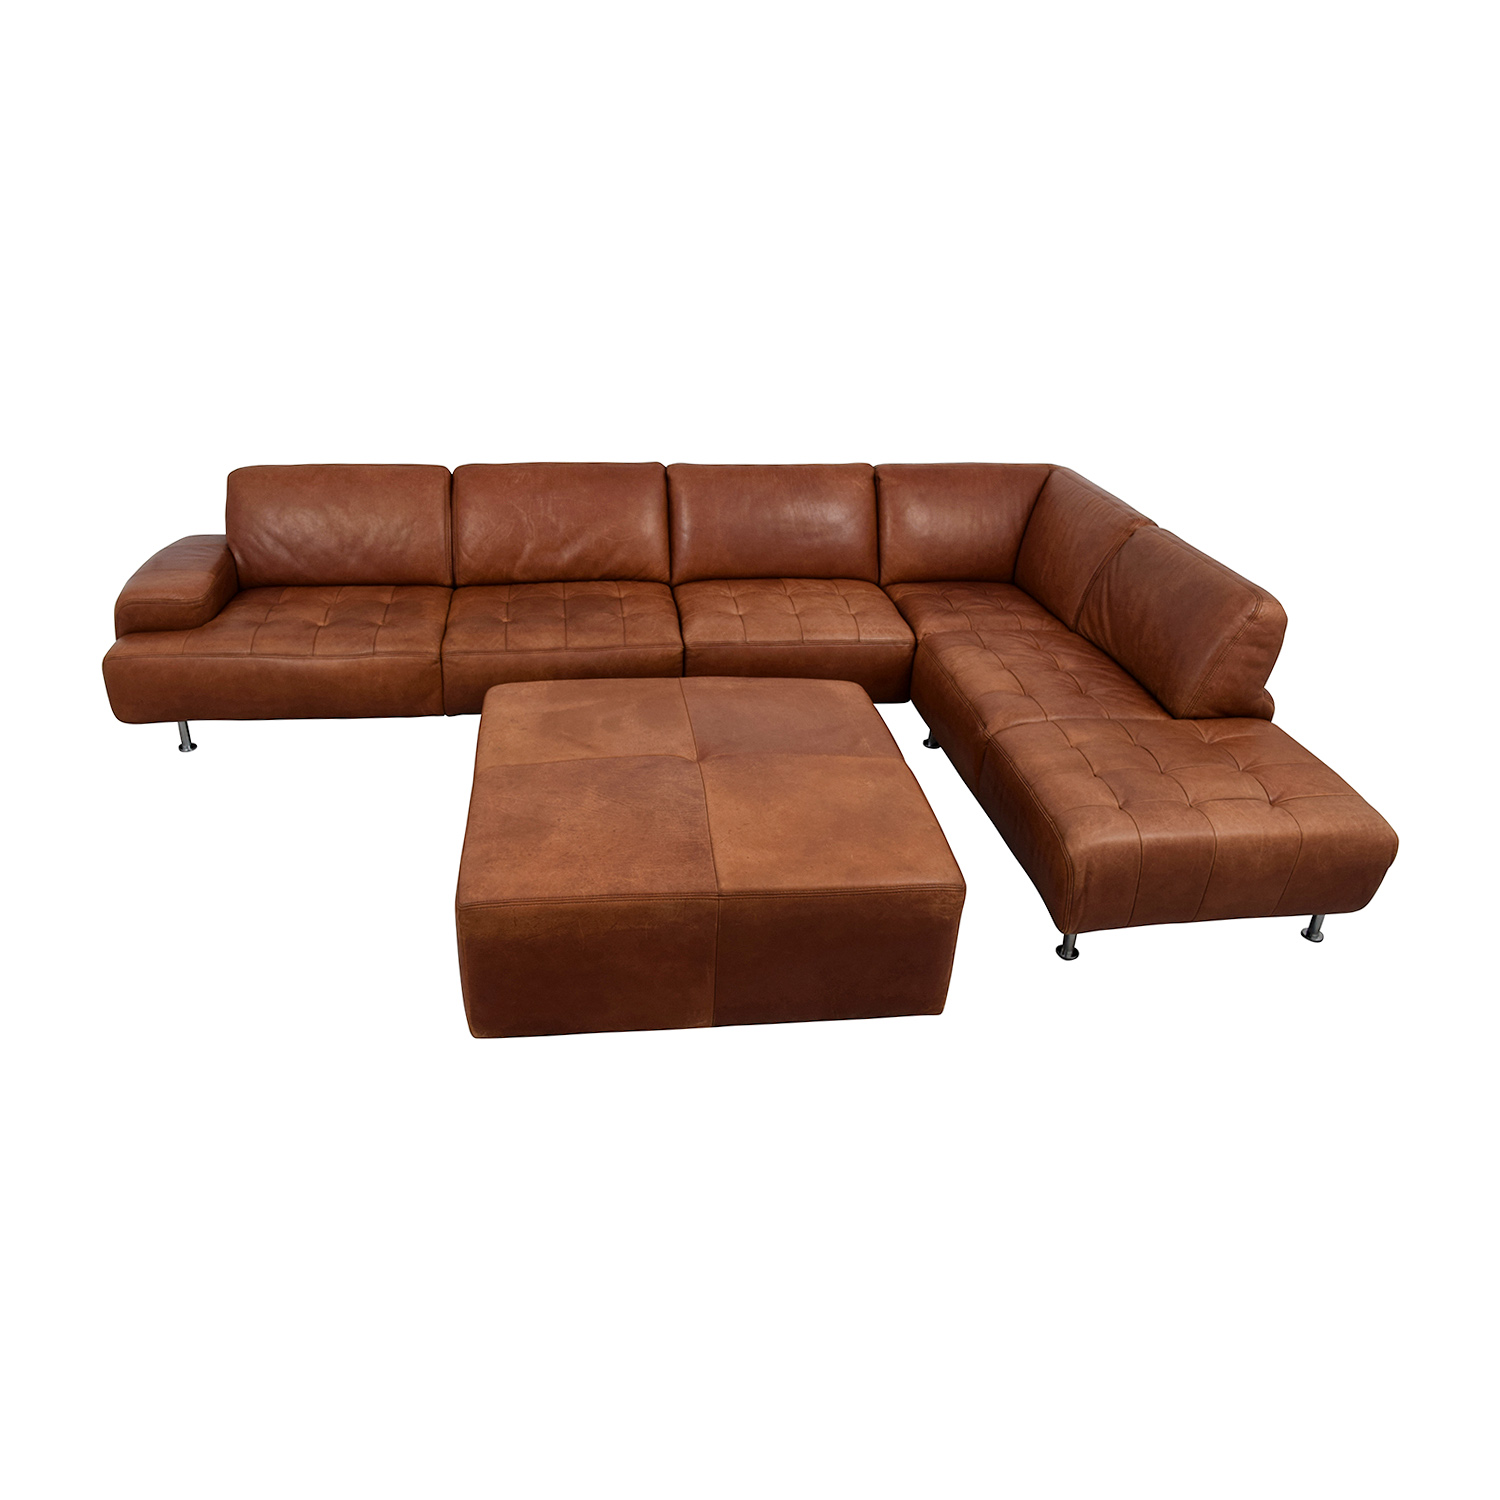 W. Schillig W. Schillig Leather Sectional with Ottoman second hand